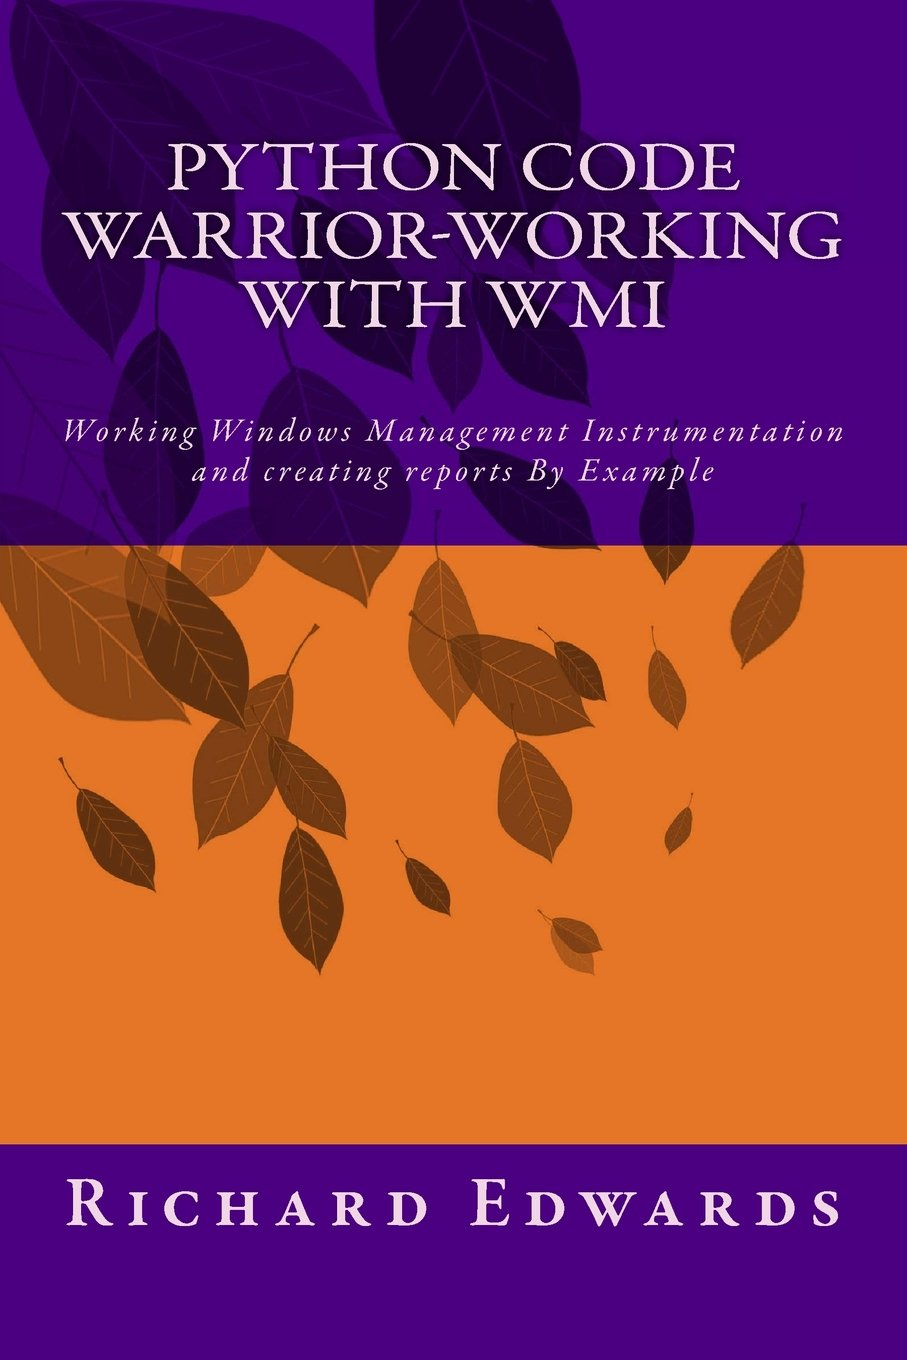 Download Python Code Warrior-Working with WMI: Working Windows Management Instrumentation and creating reports By Example ebook